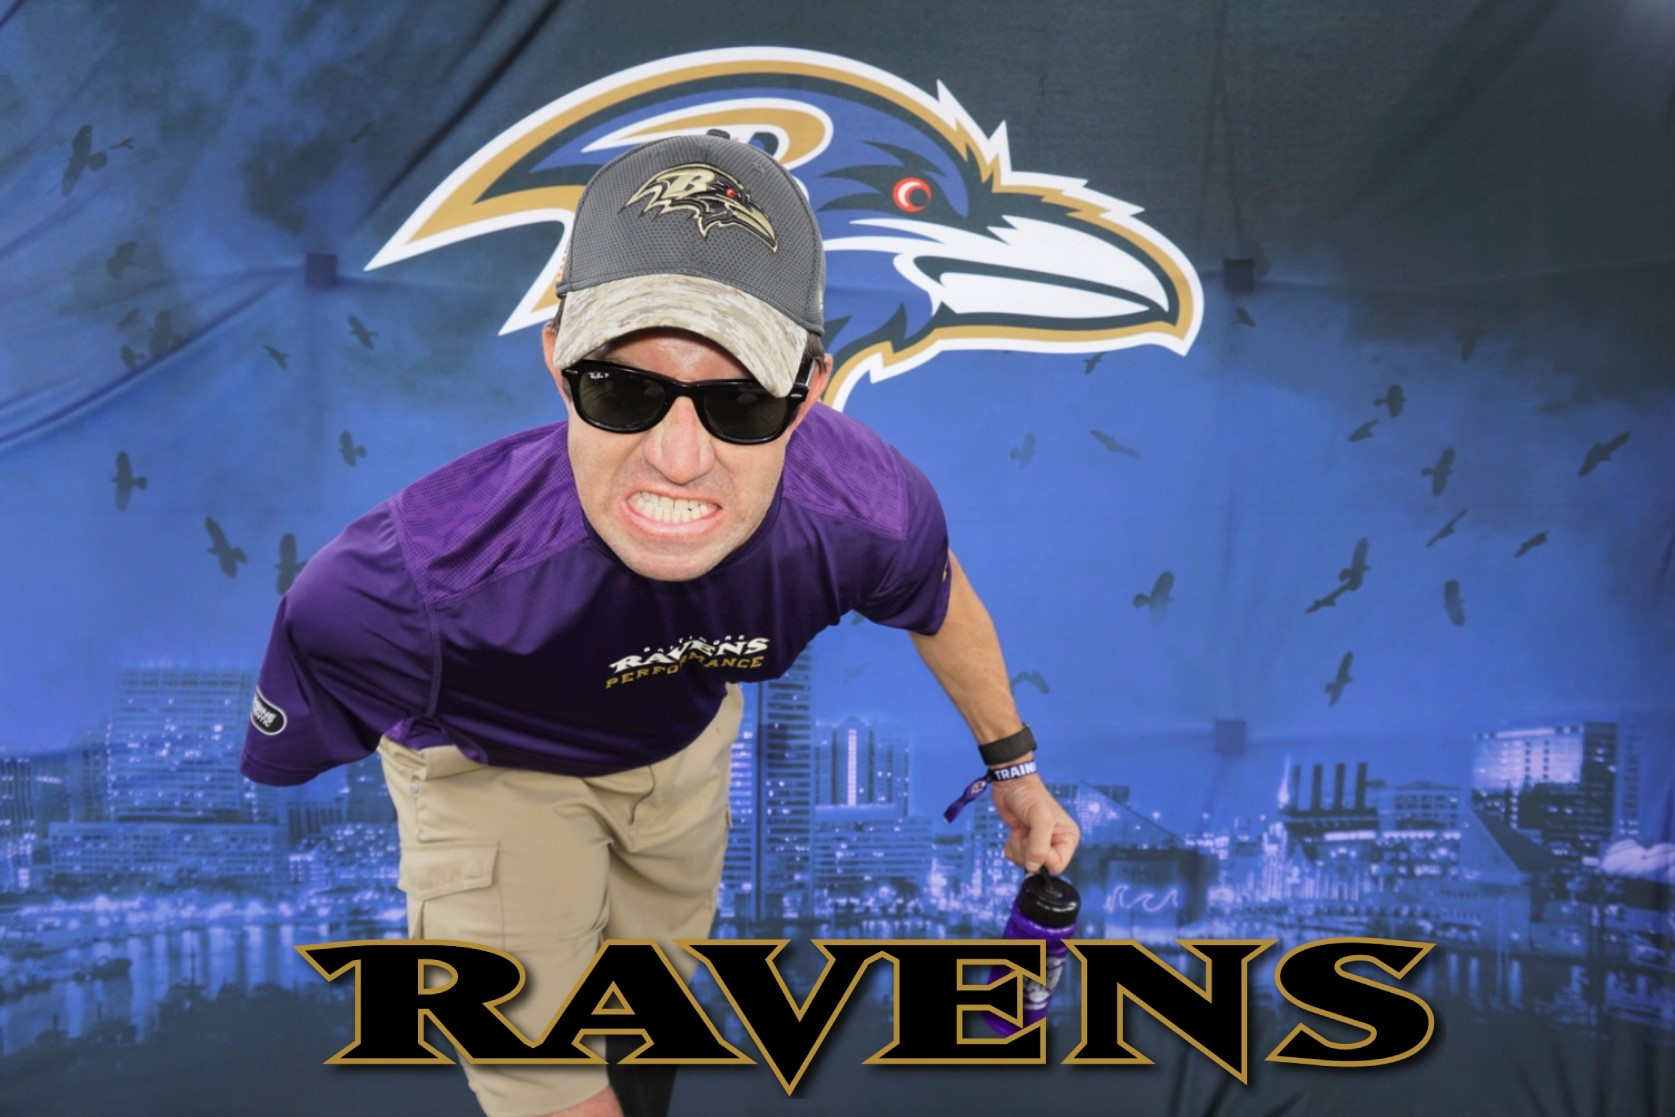 Baltimore Ravens Stadium Photo Booth